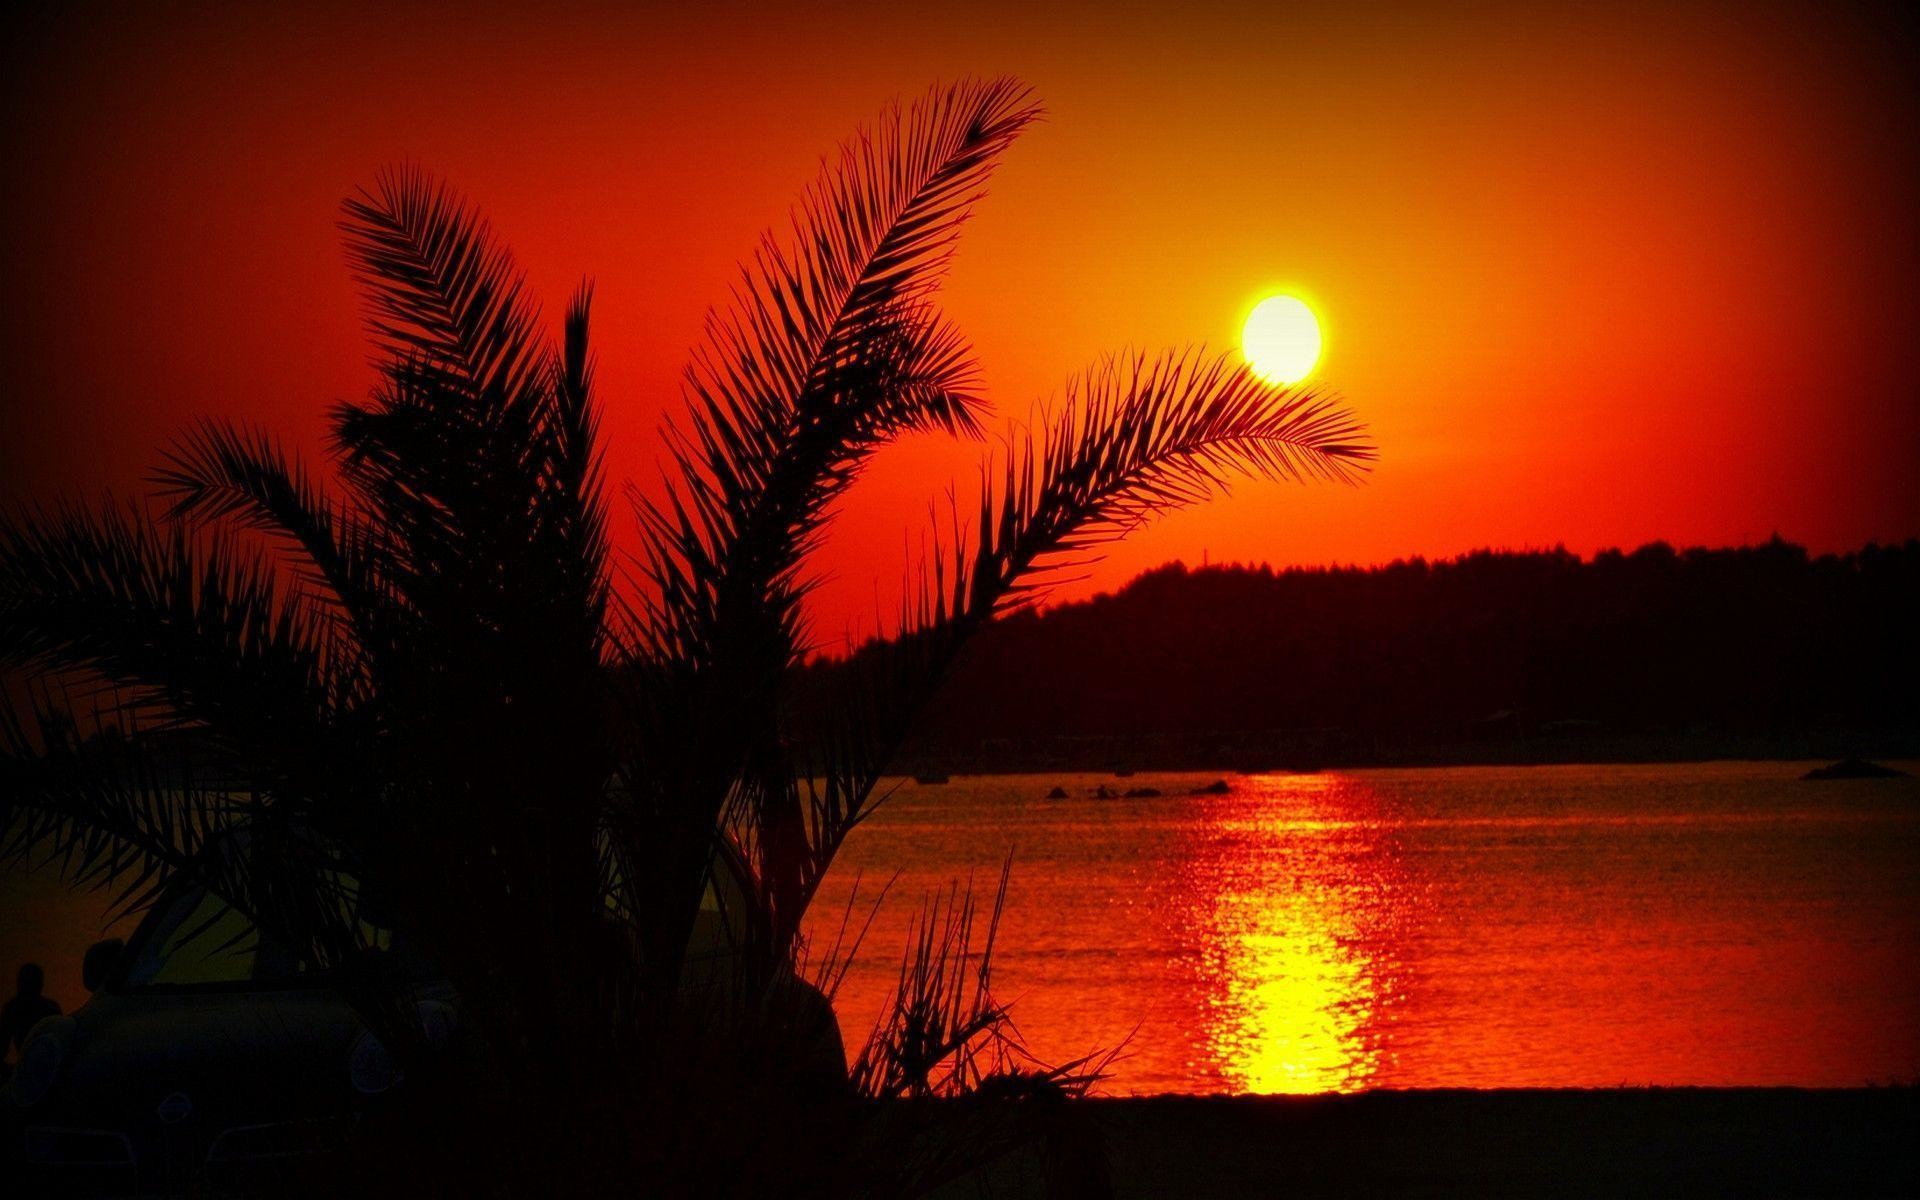 Summer Sunset Wallpapers Hq Images 12 HD Wallpapers   Hdimges.